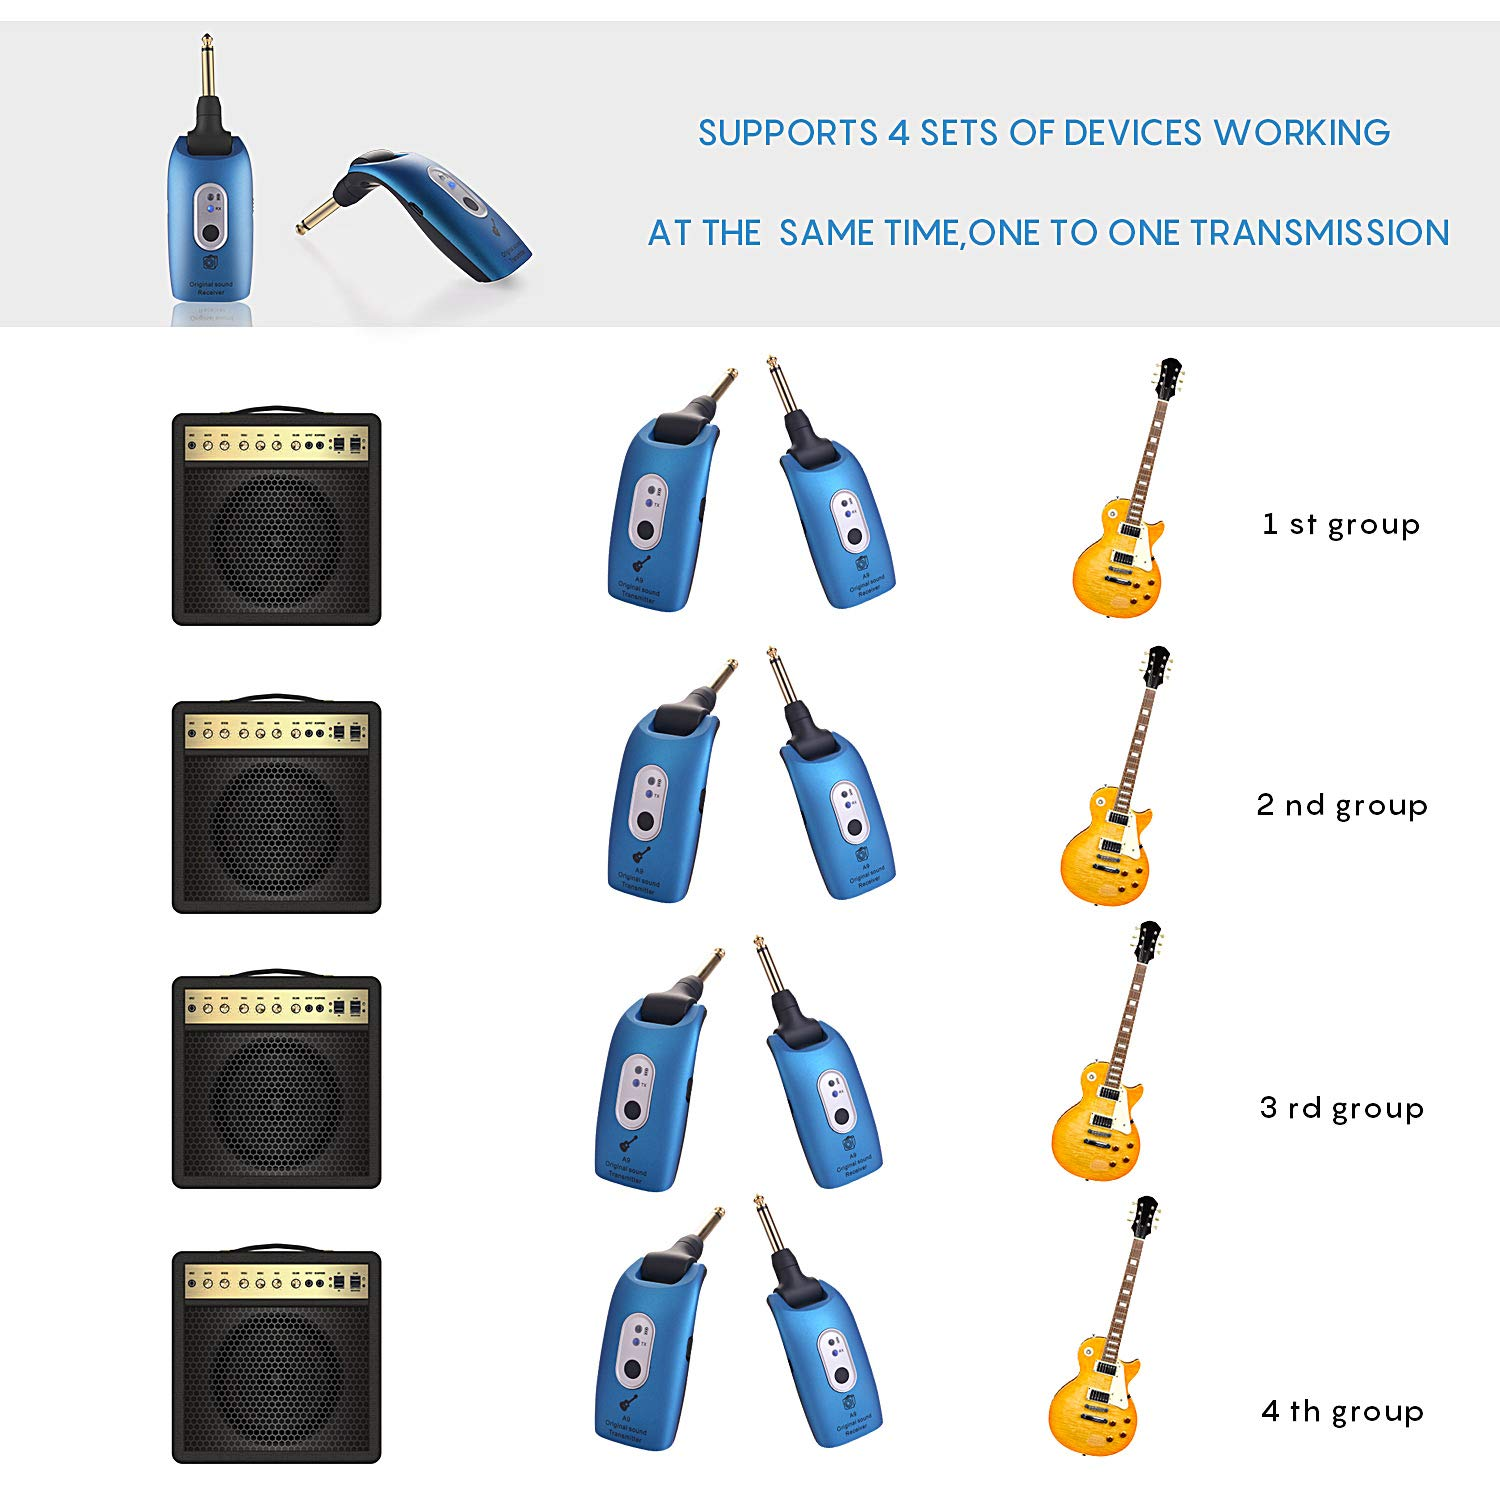 Wireless Guitar Transmitter /& Receiver System 2.4G Wireless Audio Rechargeable 164ft Transmission Range for Electric Guitar Bass Blue